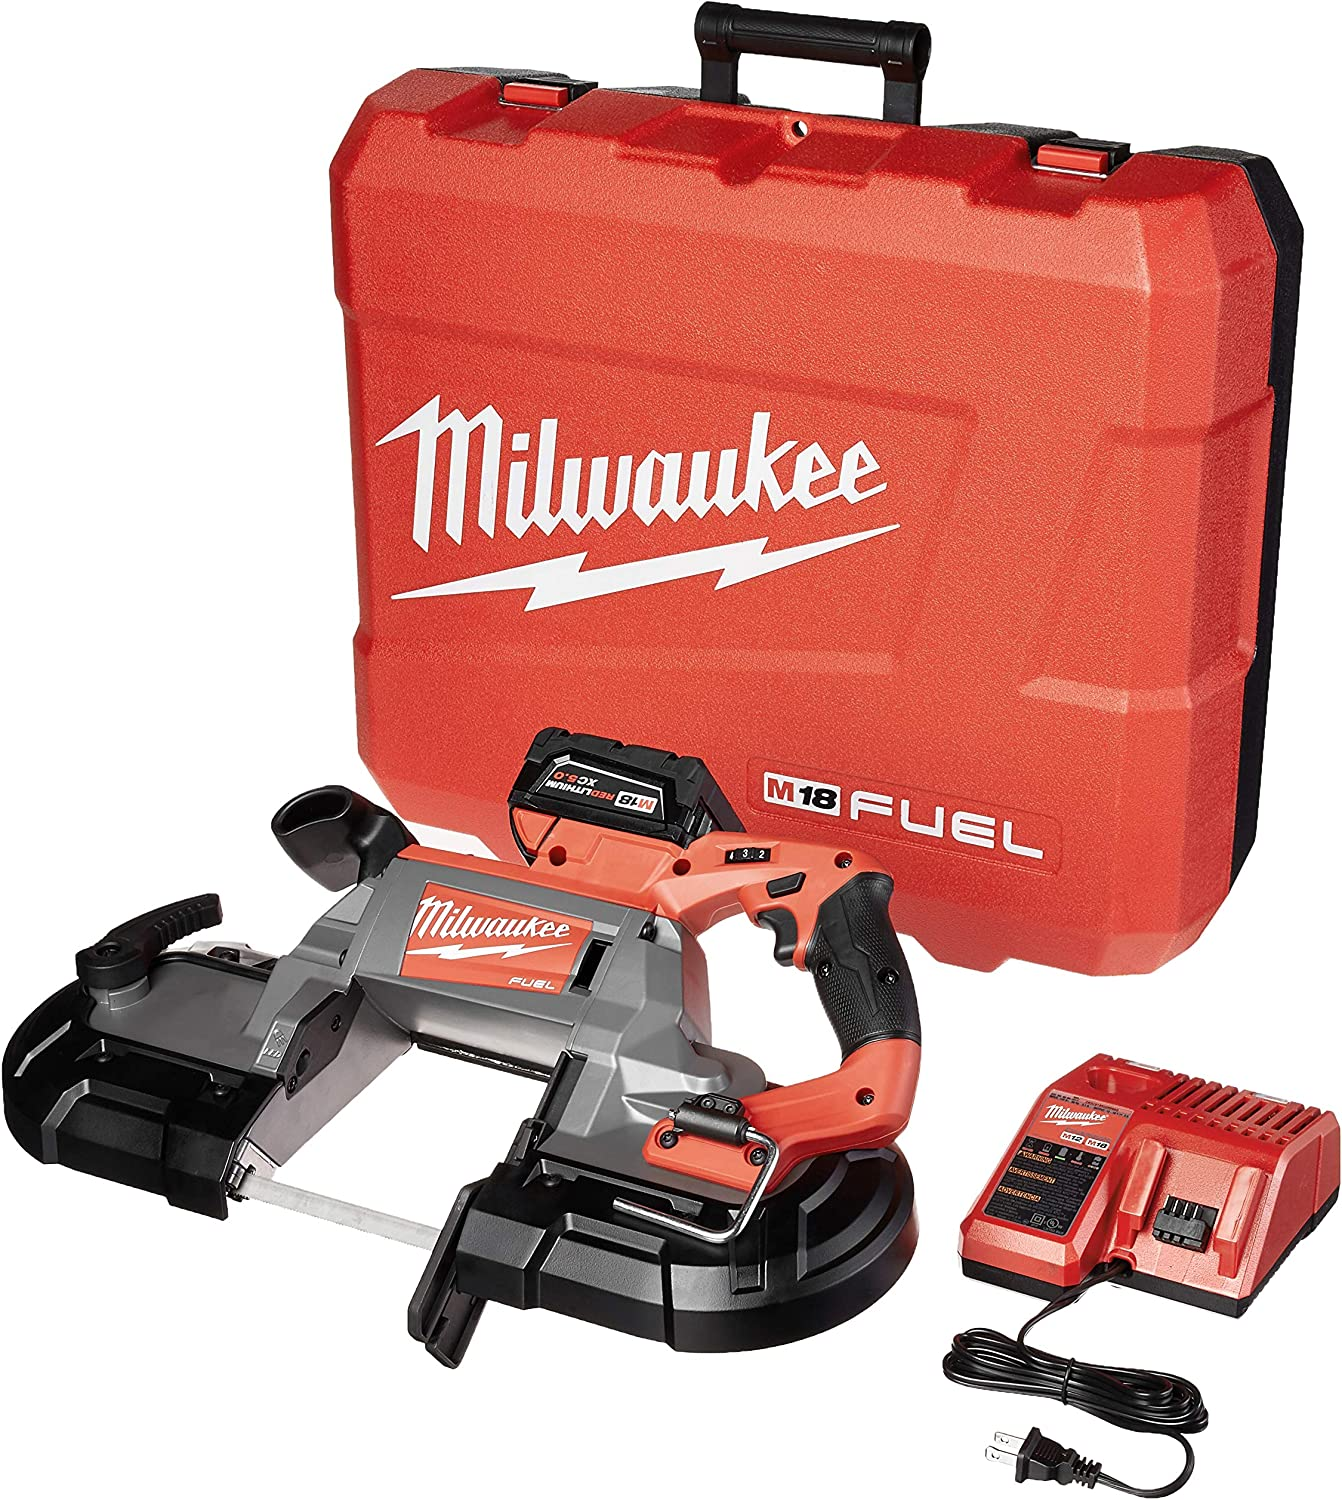 MILWAUKEE'S 2729-21 M18 Fuel Deep Cut Band Saw 1 Kit Bat Popular shop is the lowest Purchase price challenge